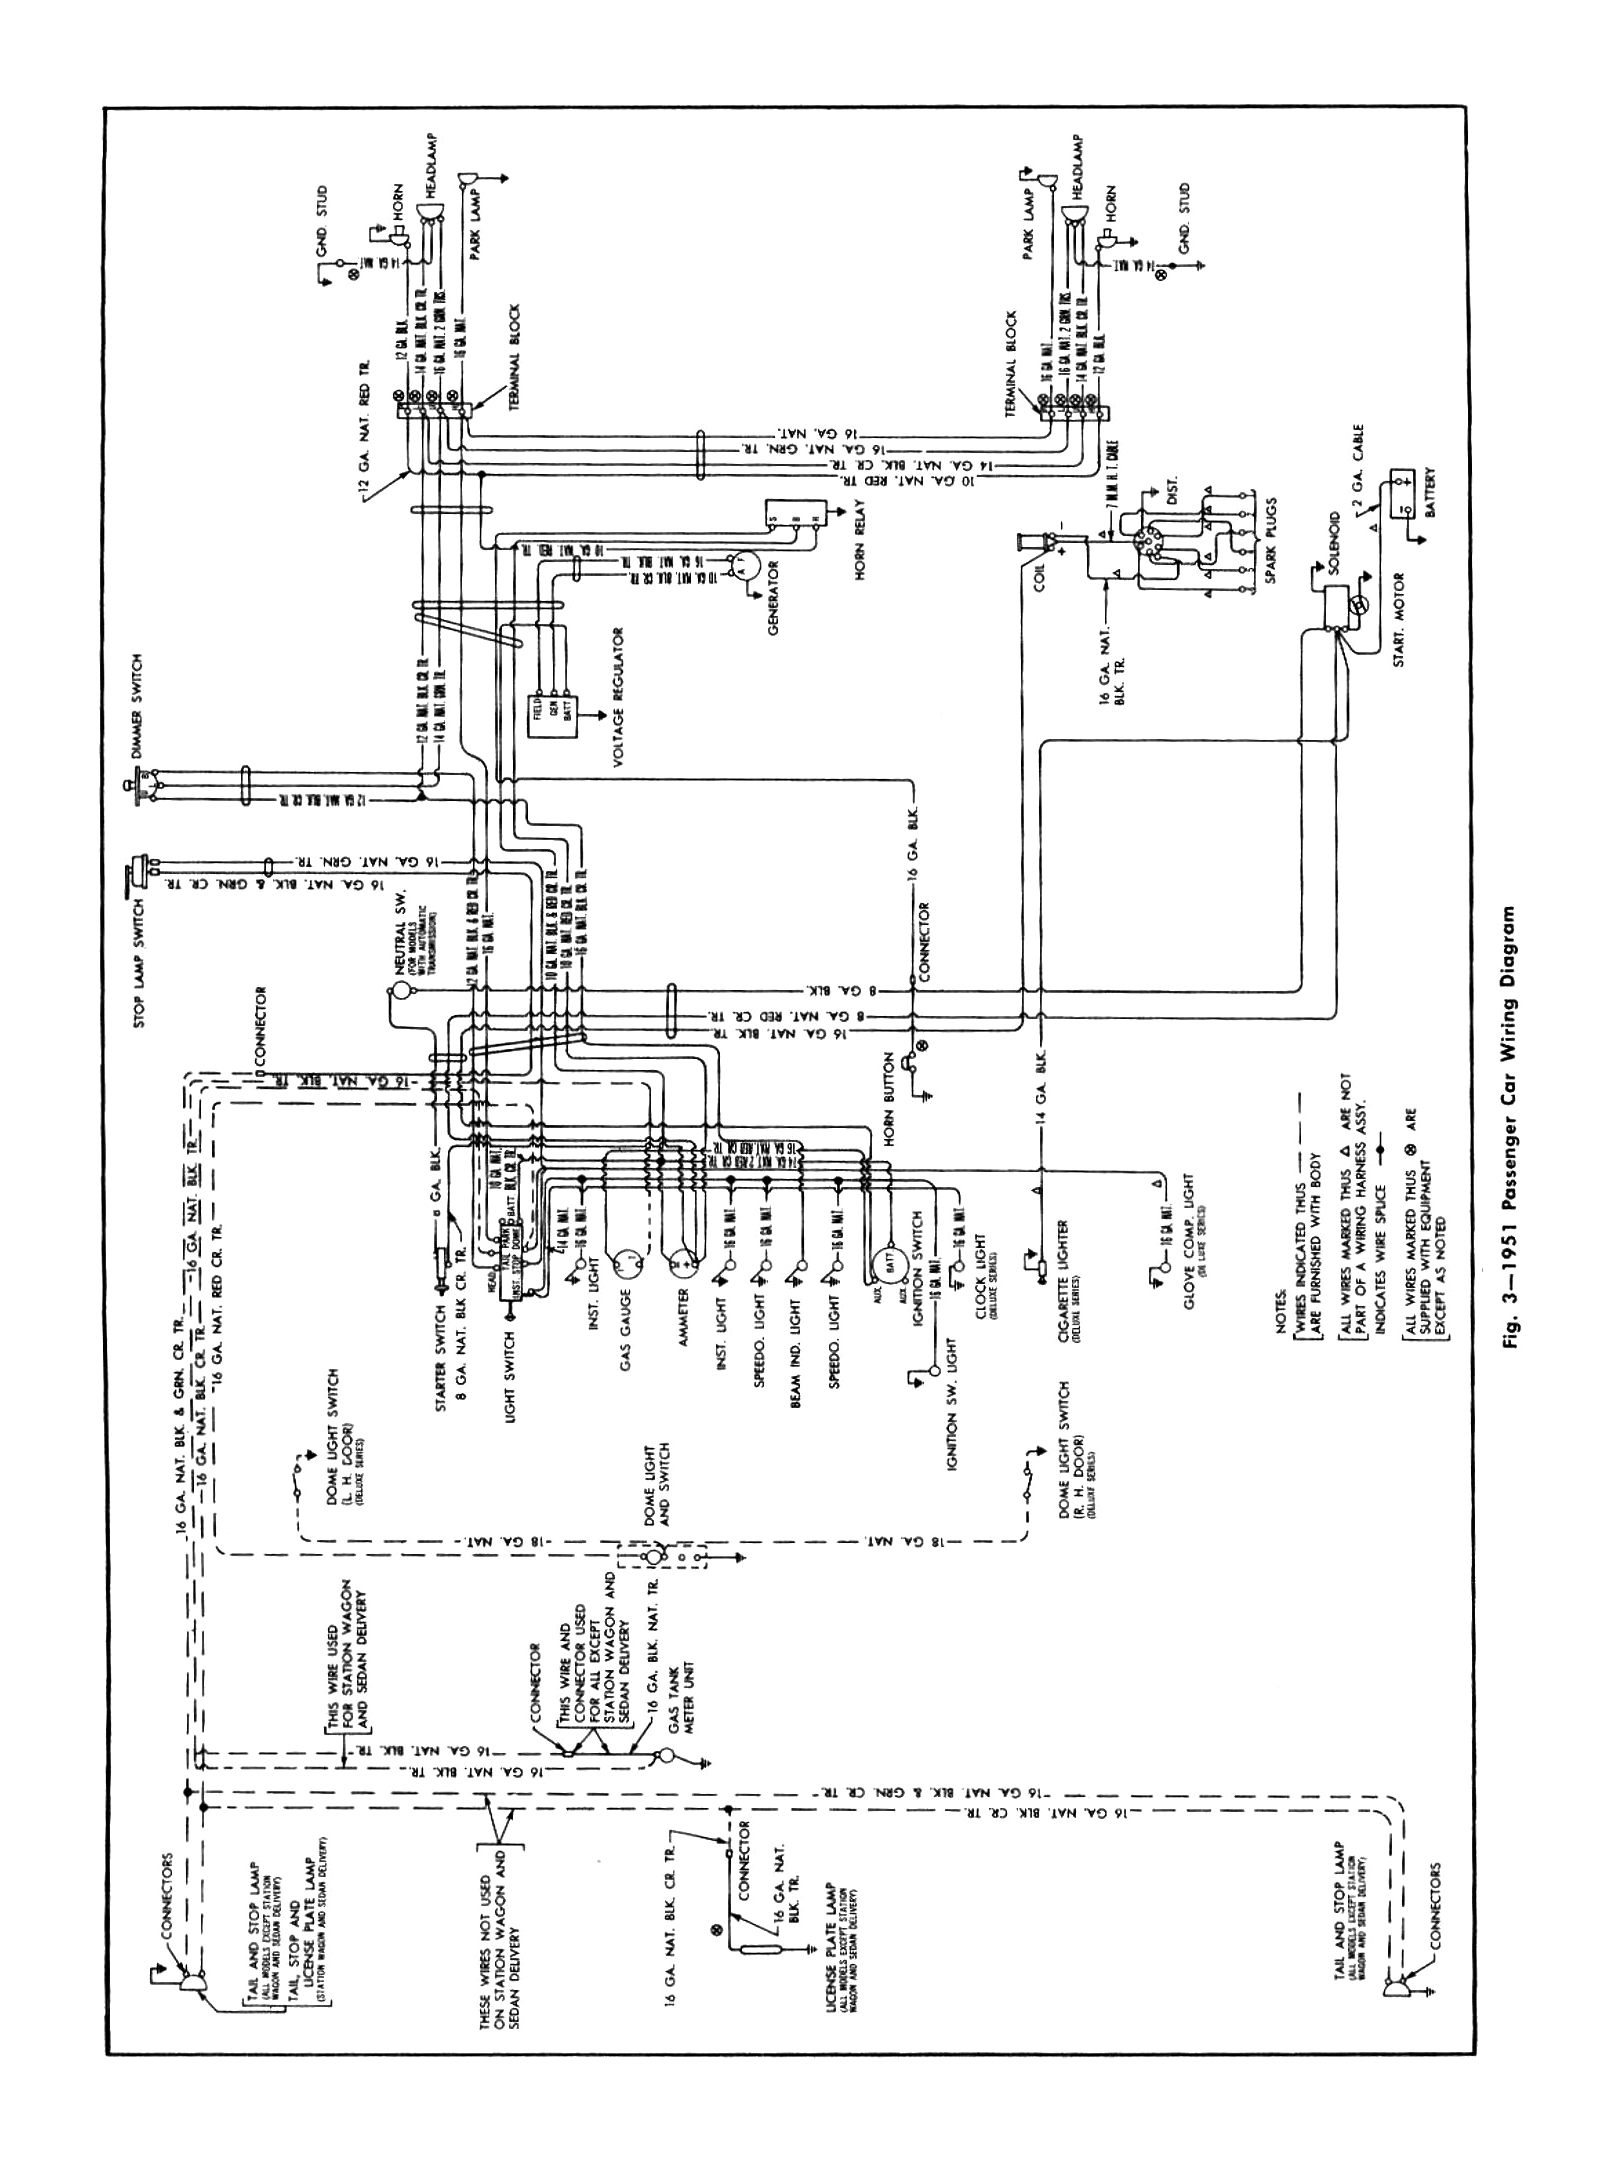 51car wiring loom diagram 1 2wire loom \u2022 wiring diagrams j squared co ez wiring mini 20 wiring diagram download at metegol.co